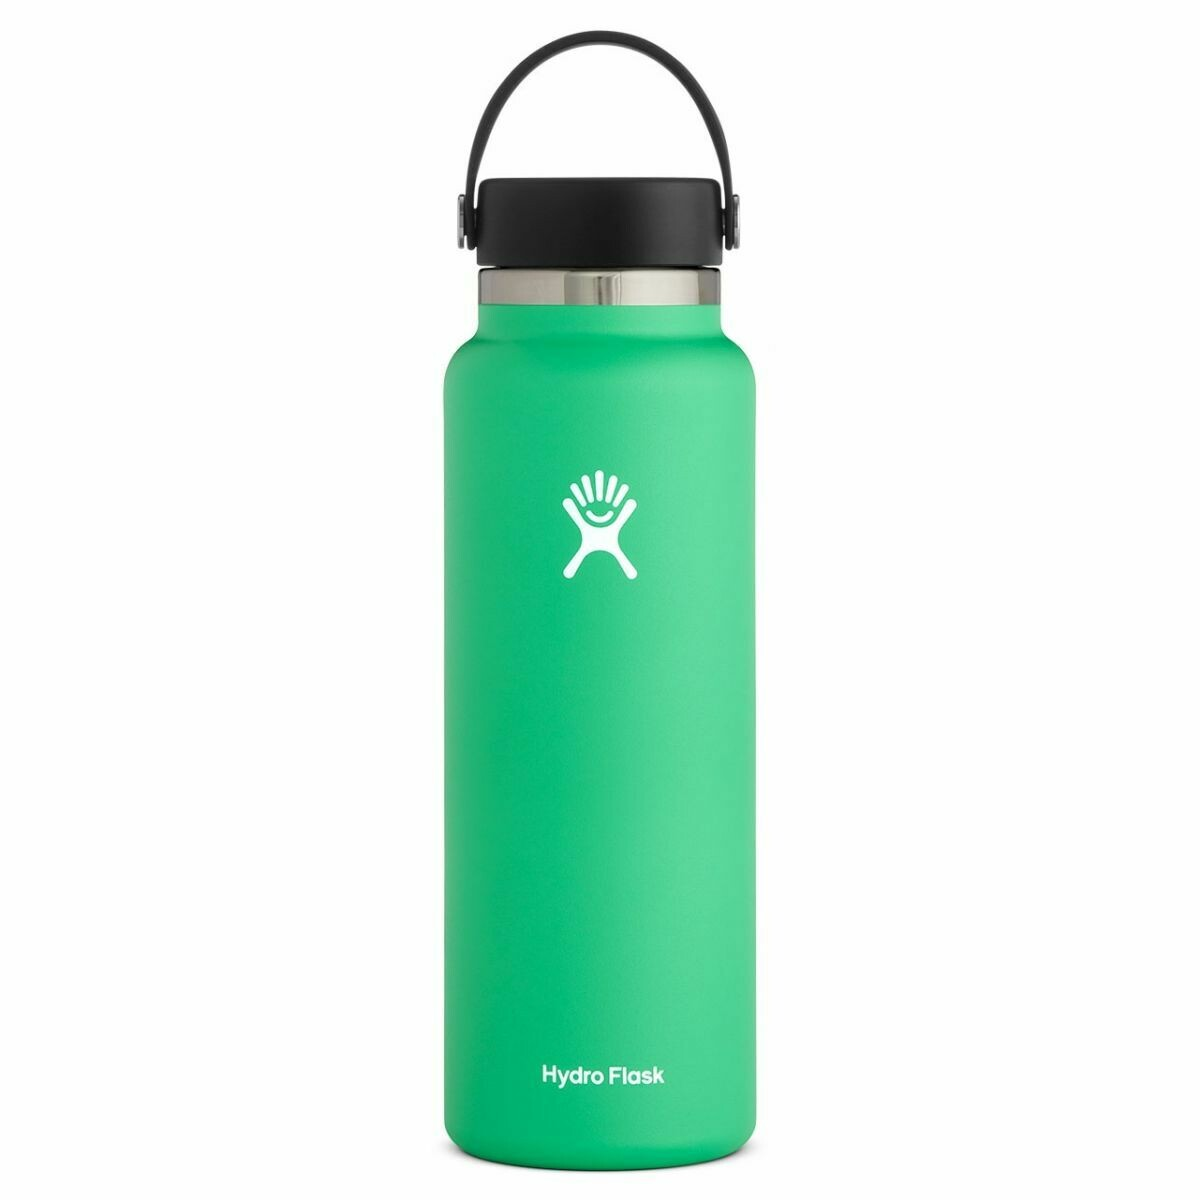 Hydro Flask 40 oz Wide Mouth Bottle